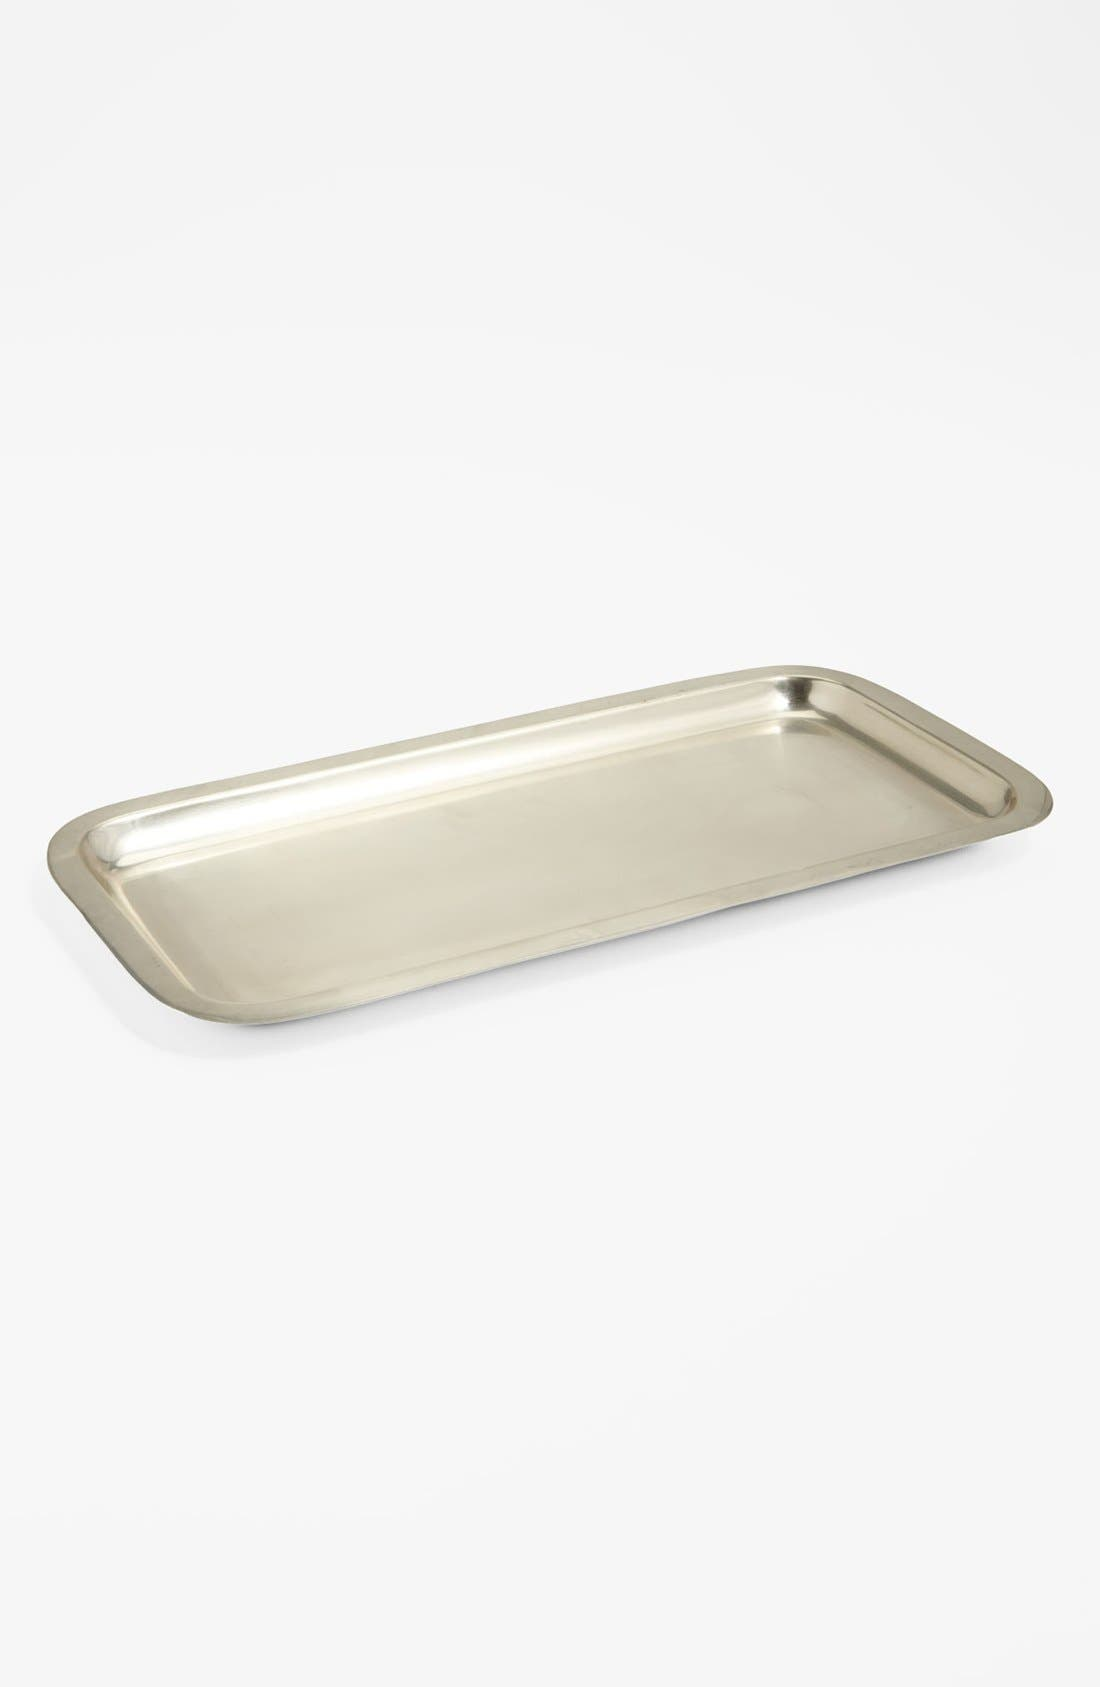 Studio 'Wallingford' Tray,                             Main thumbnail 1, color,                             NICKEL